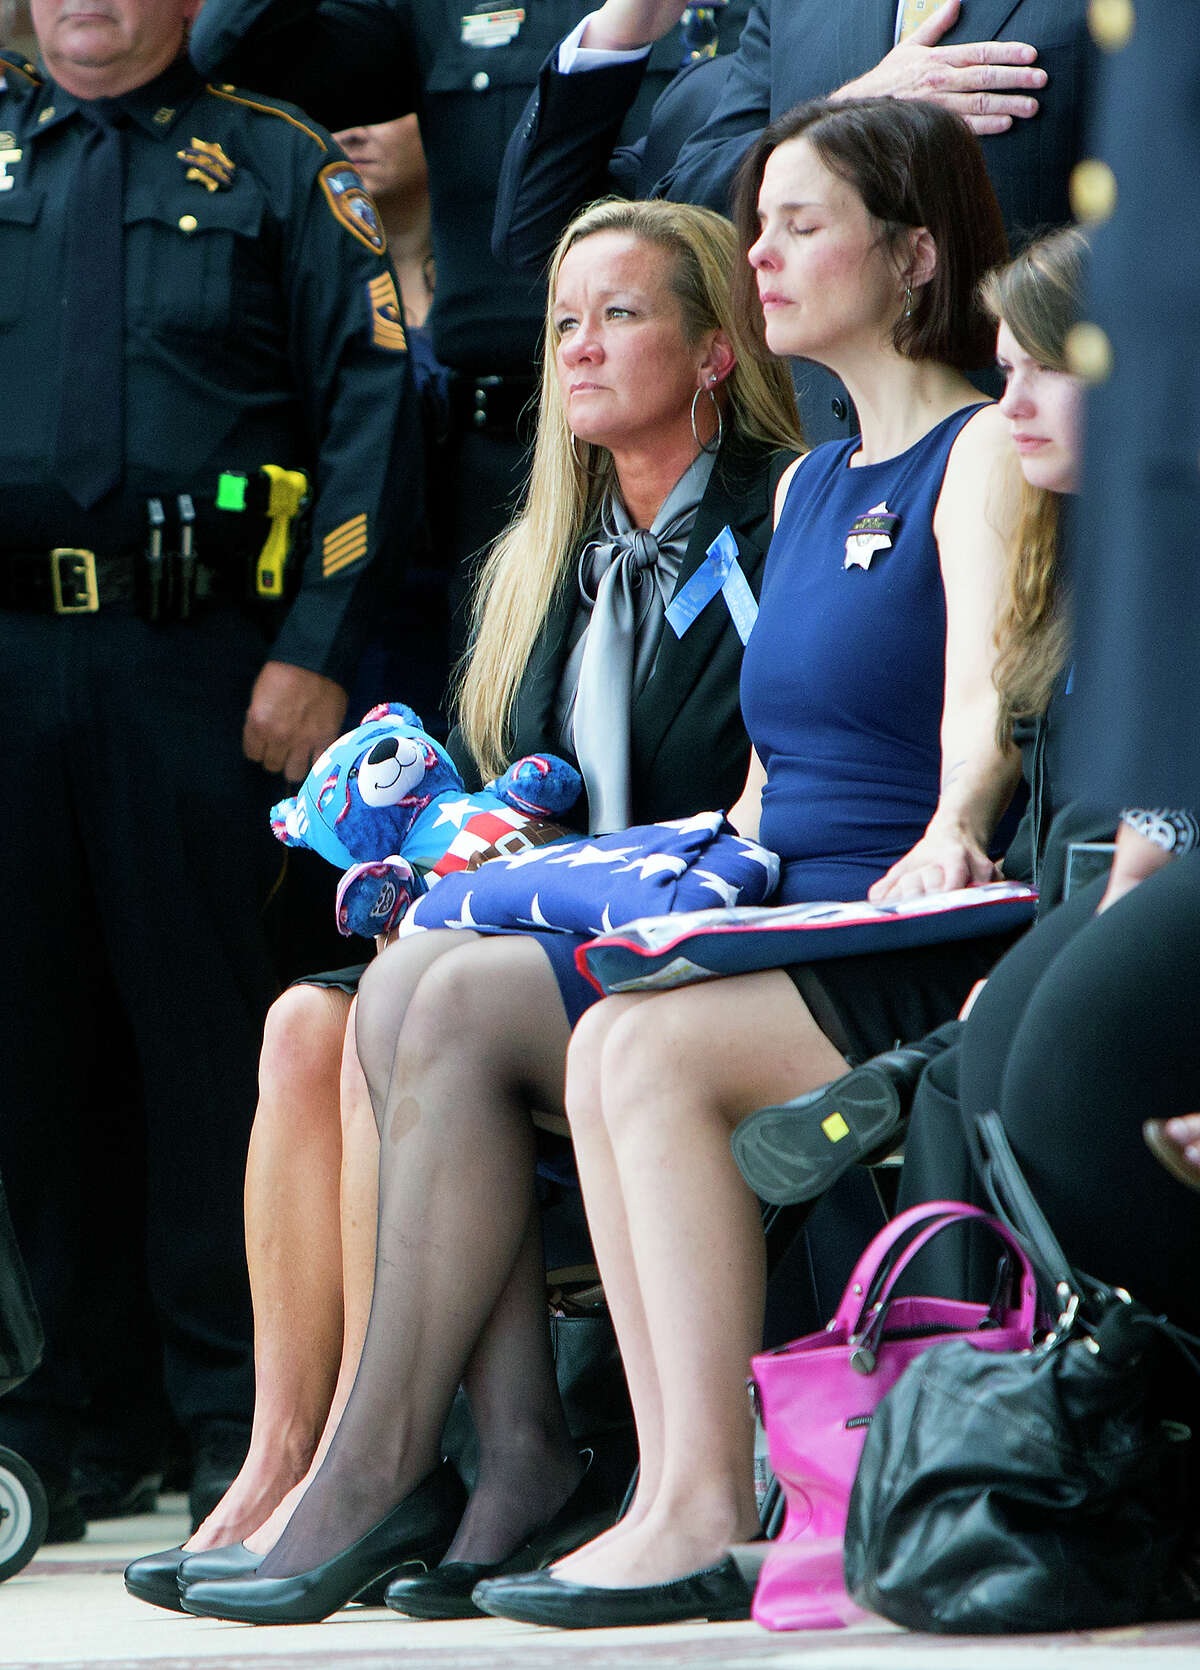 Harris County Sheriff's Deputy Darren Goforth's wife, Kathleen Goforth, right, reacts during his funeral service at Second Baptist Church, Friday, Sept. 4, 2015, in Houston. Goforth was shot to death a week ago at a service station as he pumped gas into his police cruiser. Shannon Miles, 30, stands charged with capital murder in Goforth's death.